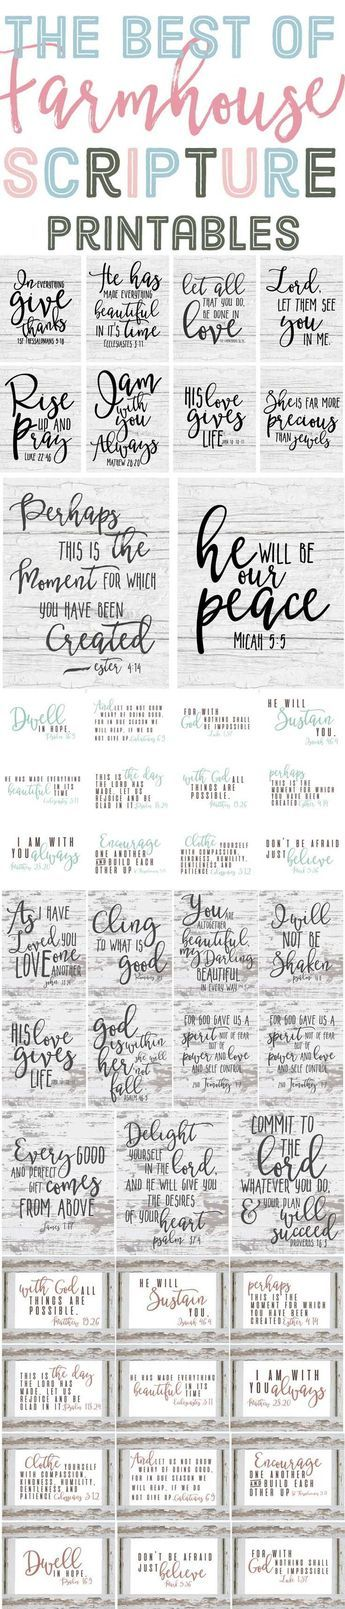 Wow this is a long list of printable farmhouse scriptures. I love these